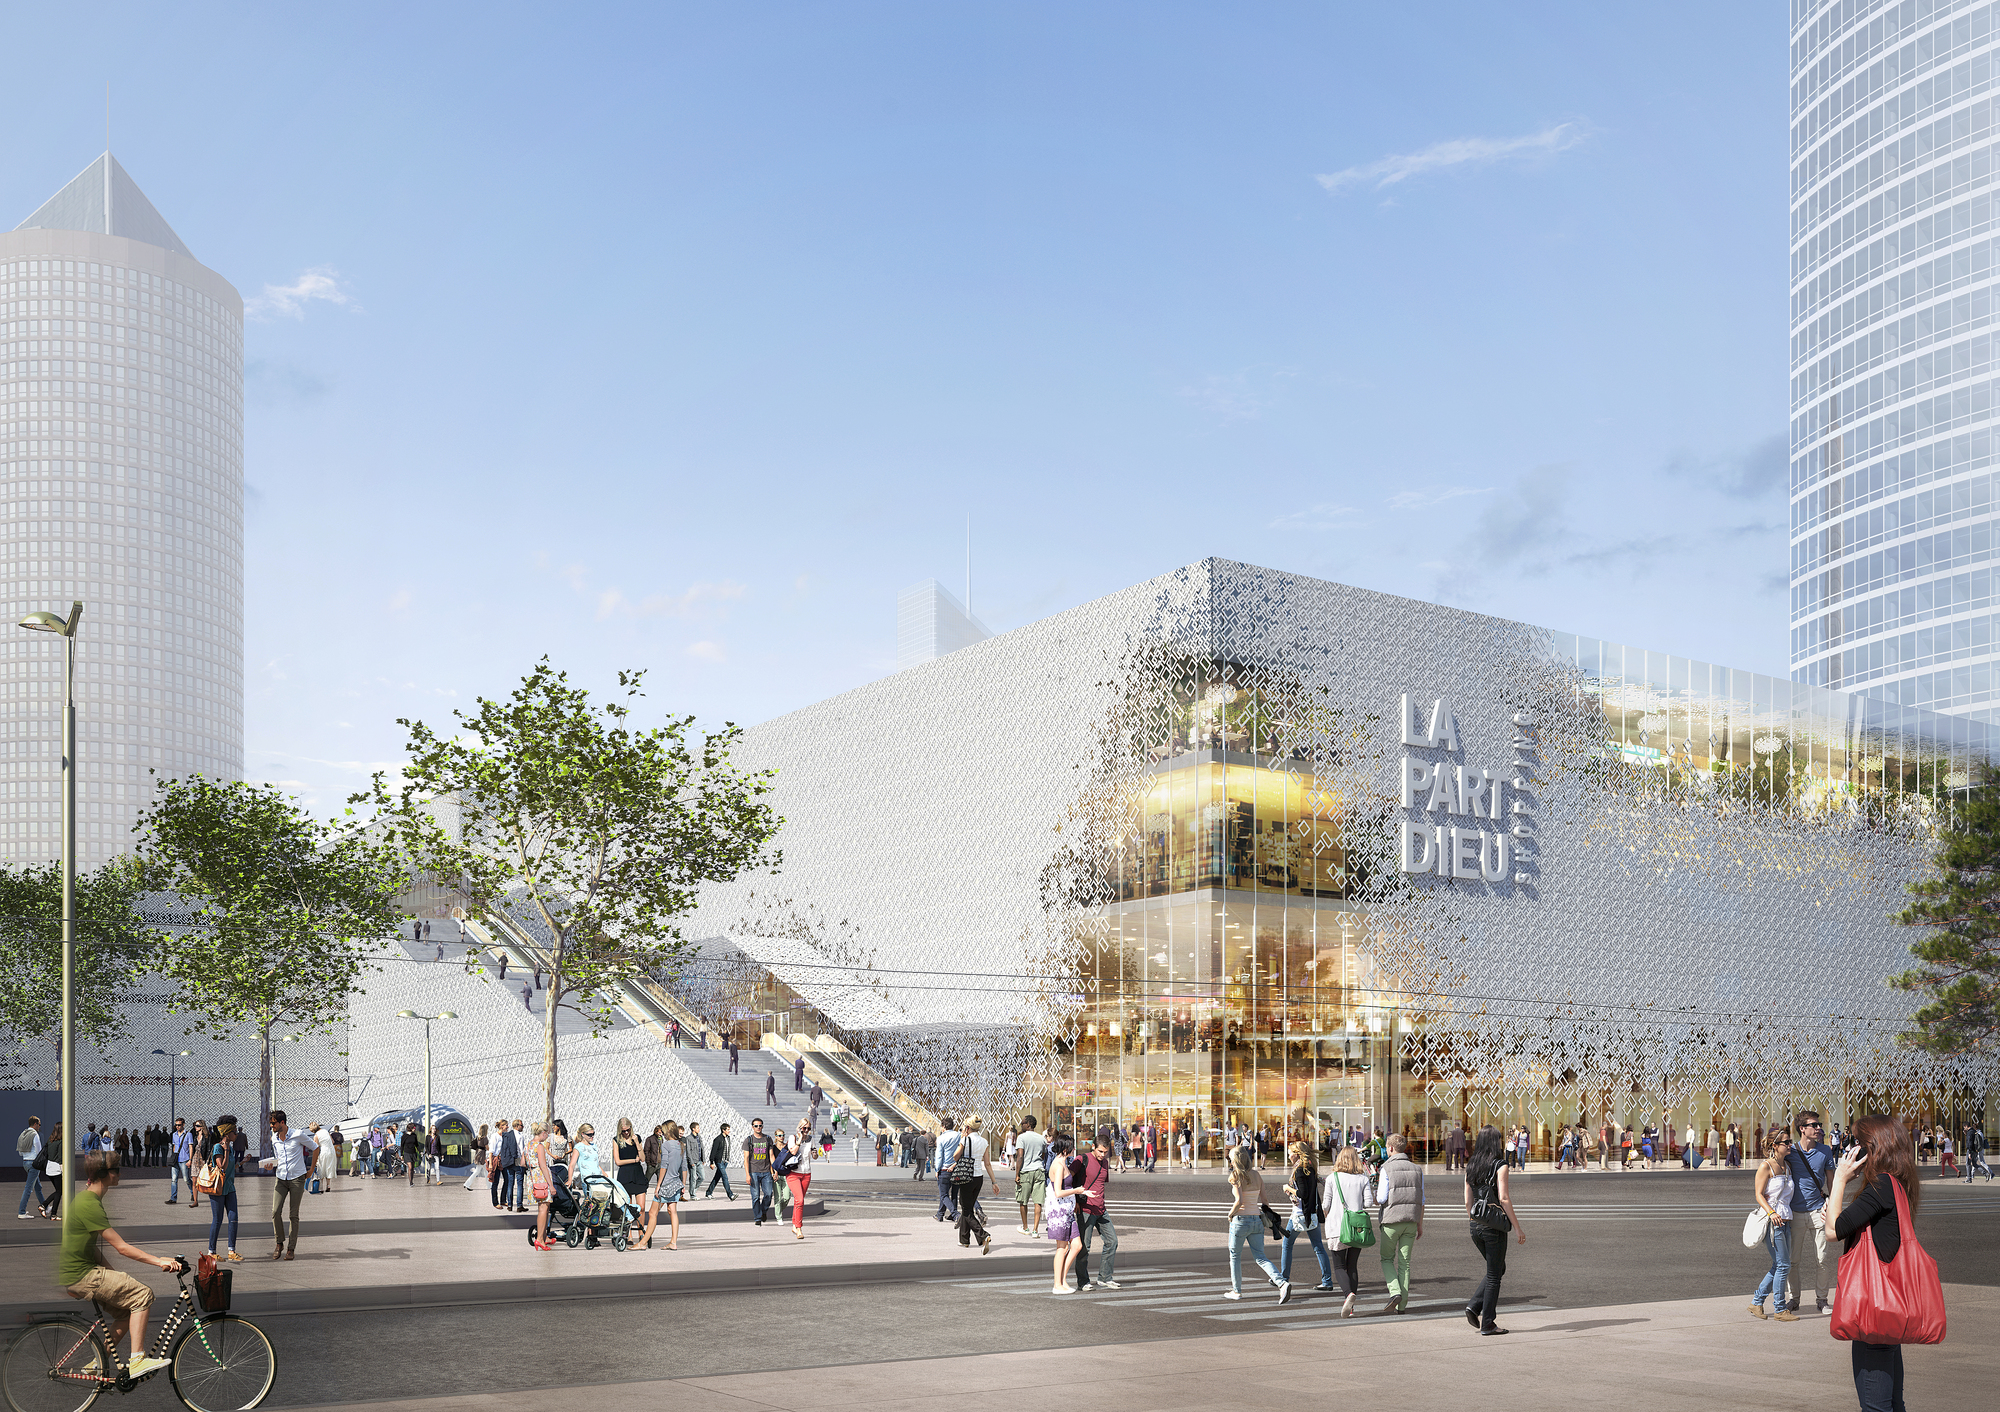 Mvrdv reveals plans to transform part dieu shopping center - Horaires piscine pontoise ...